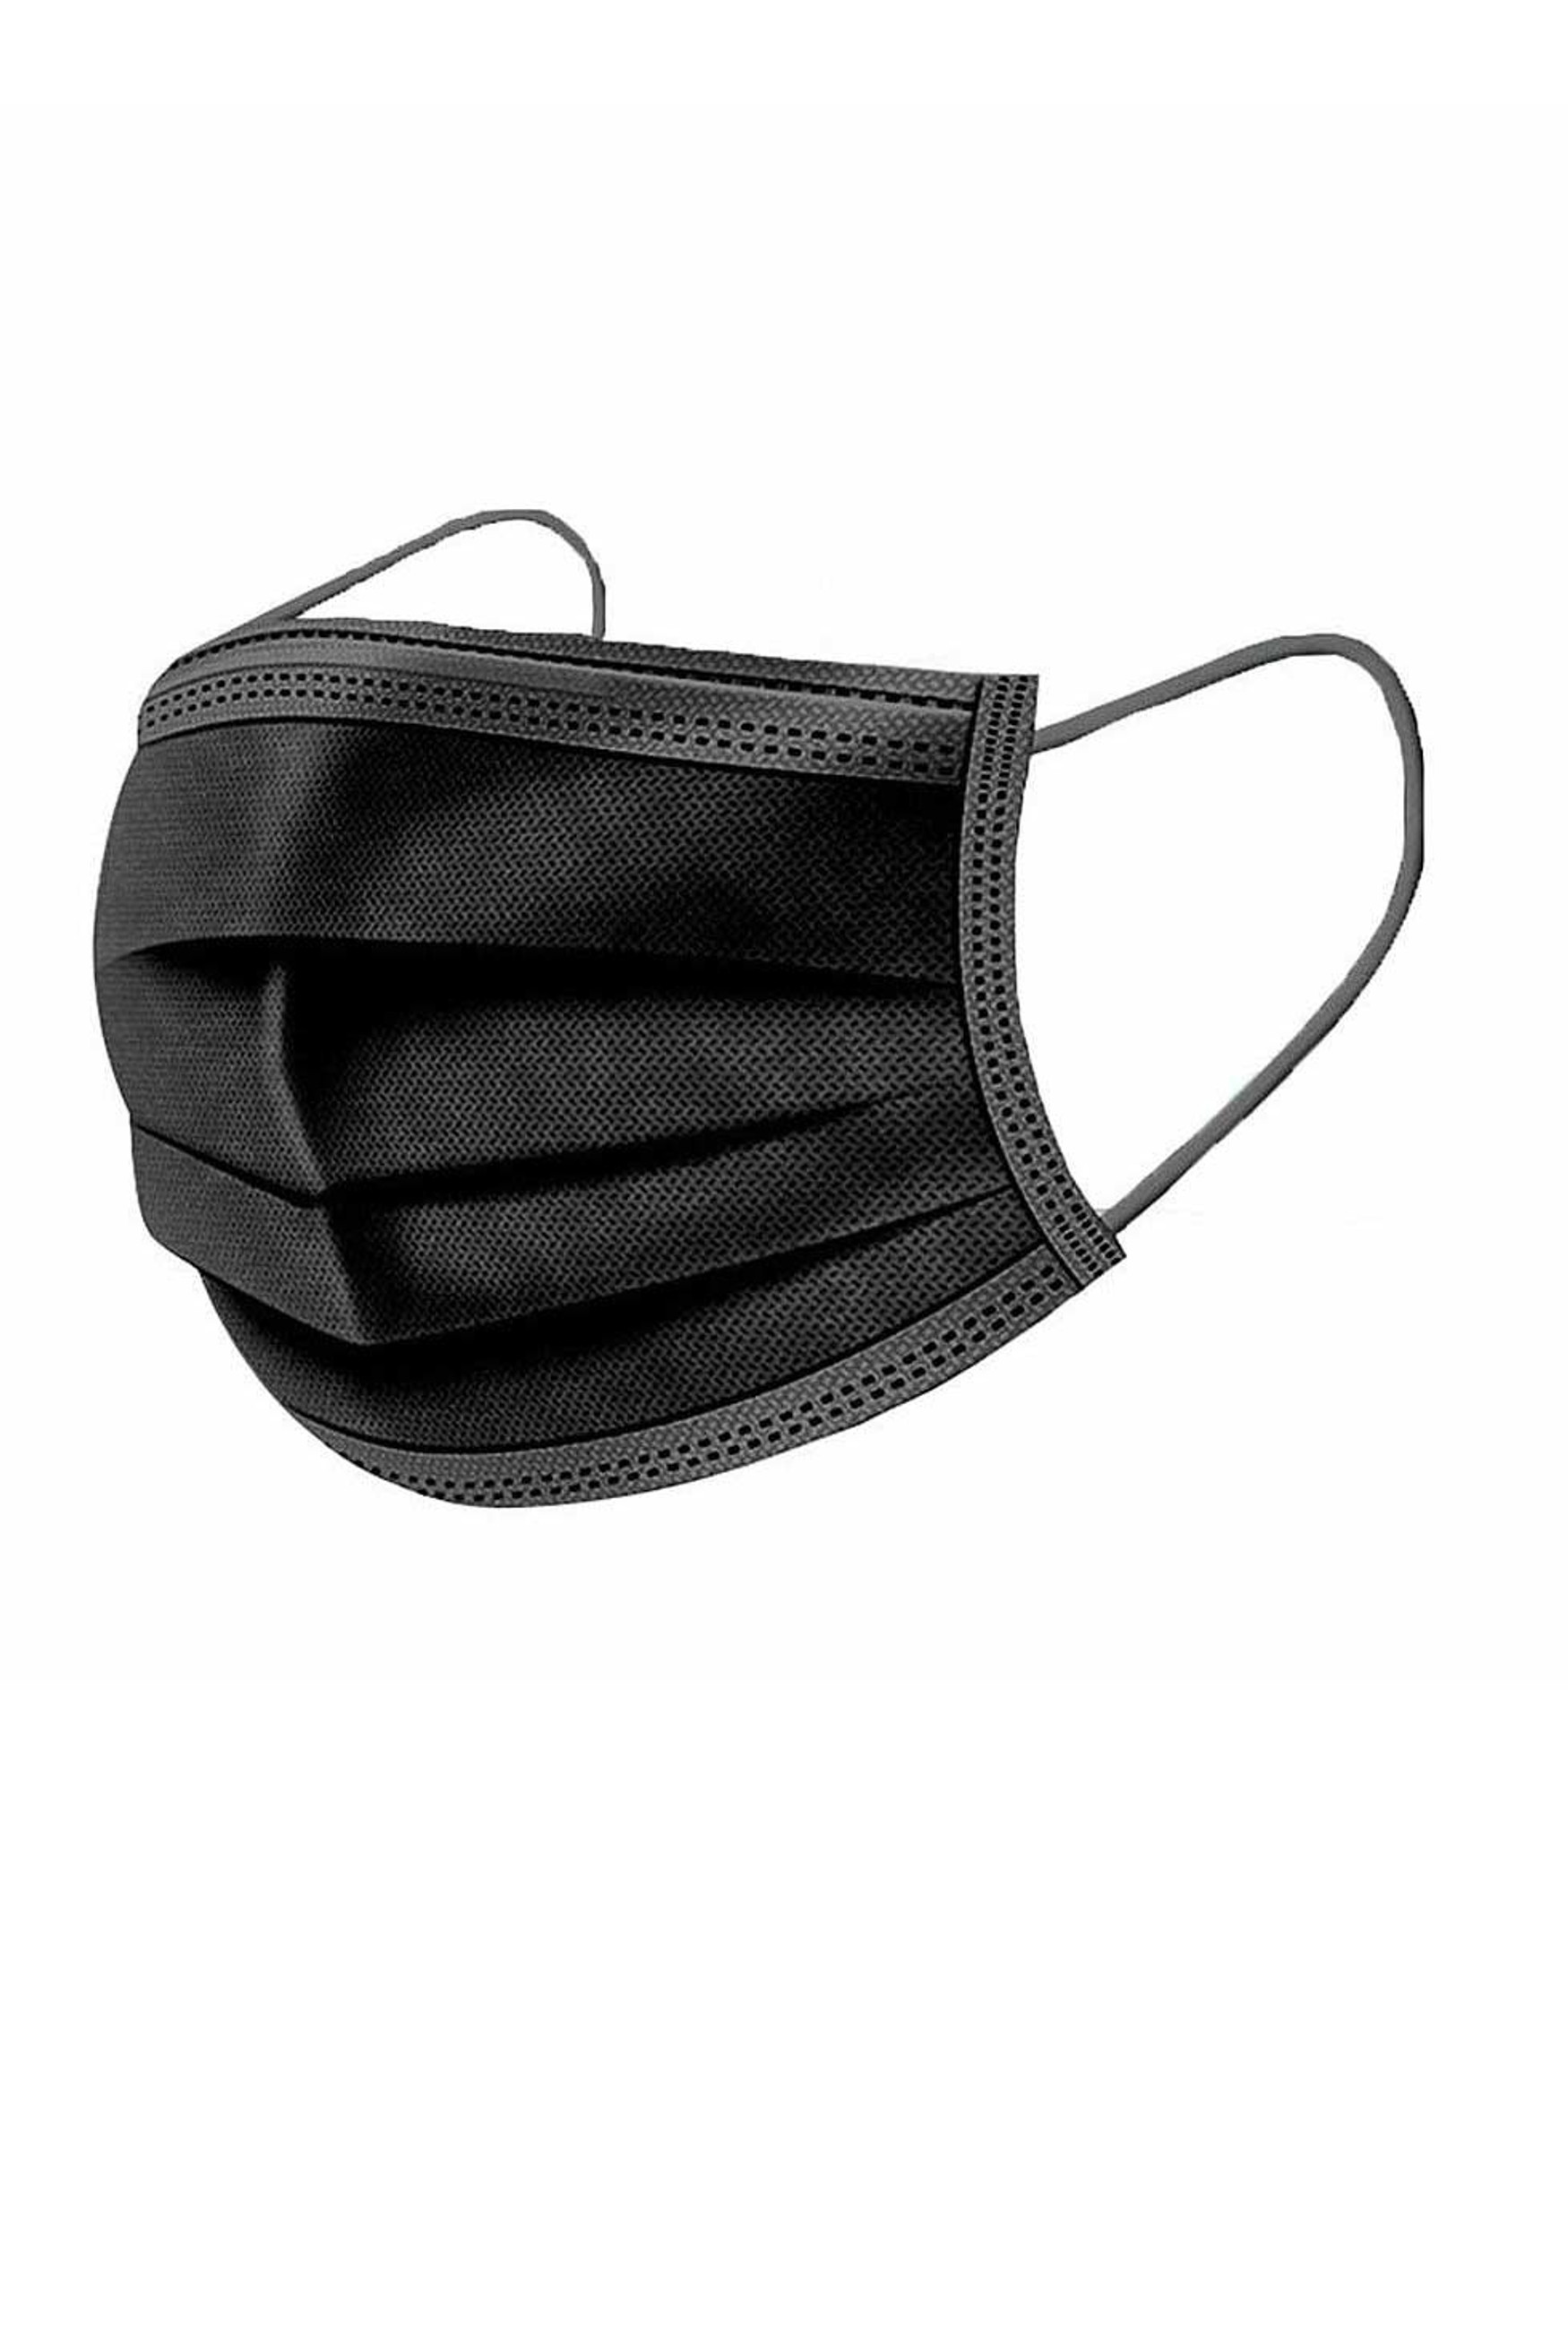 Black 3 Ply Disposable Face Masks - 25 Pack